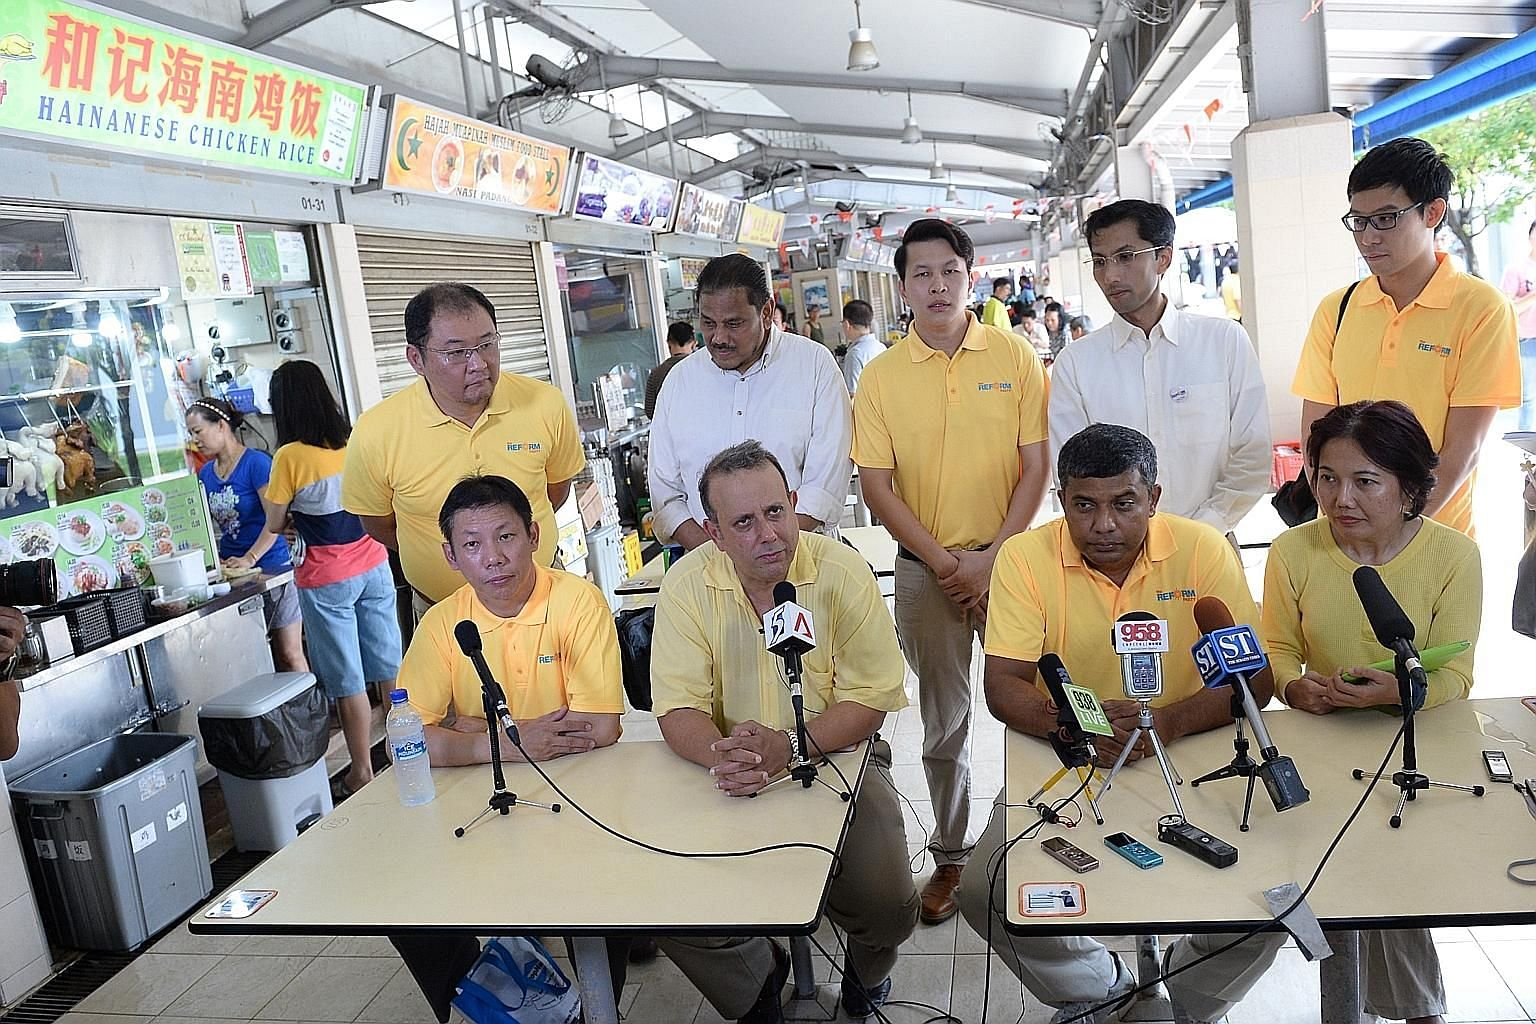 The Reform Party yesterday unveiled its first batch of candidates at a hawker centre in Telok Blangah. Contesting West Coast GRC are (seated, from left) property agent Darren Soh and RP secretary-general Kenneth Jeyaretnam; RP chairman Andy Zhu (stan